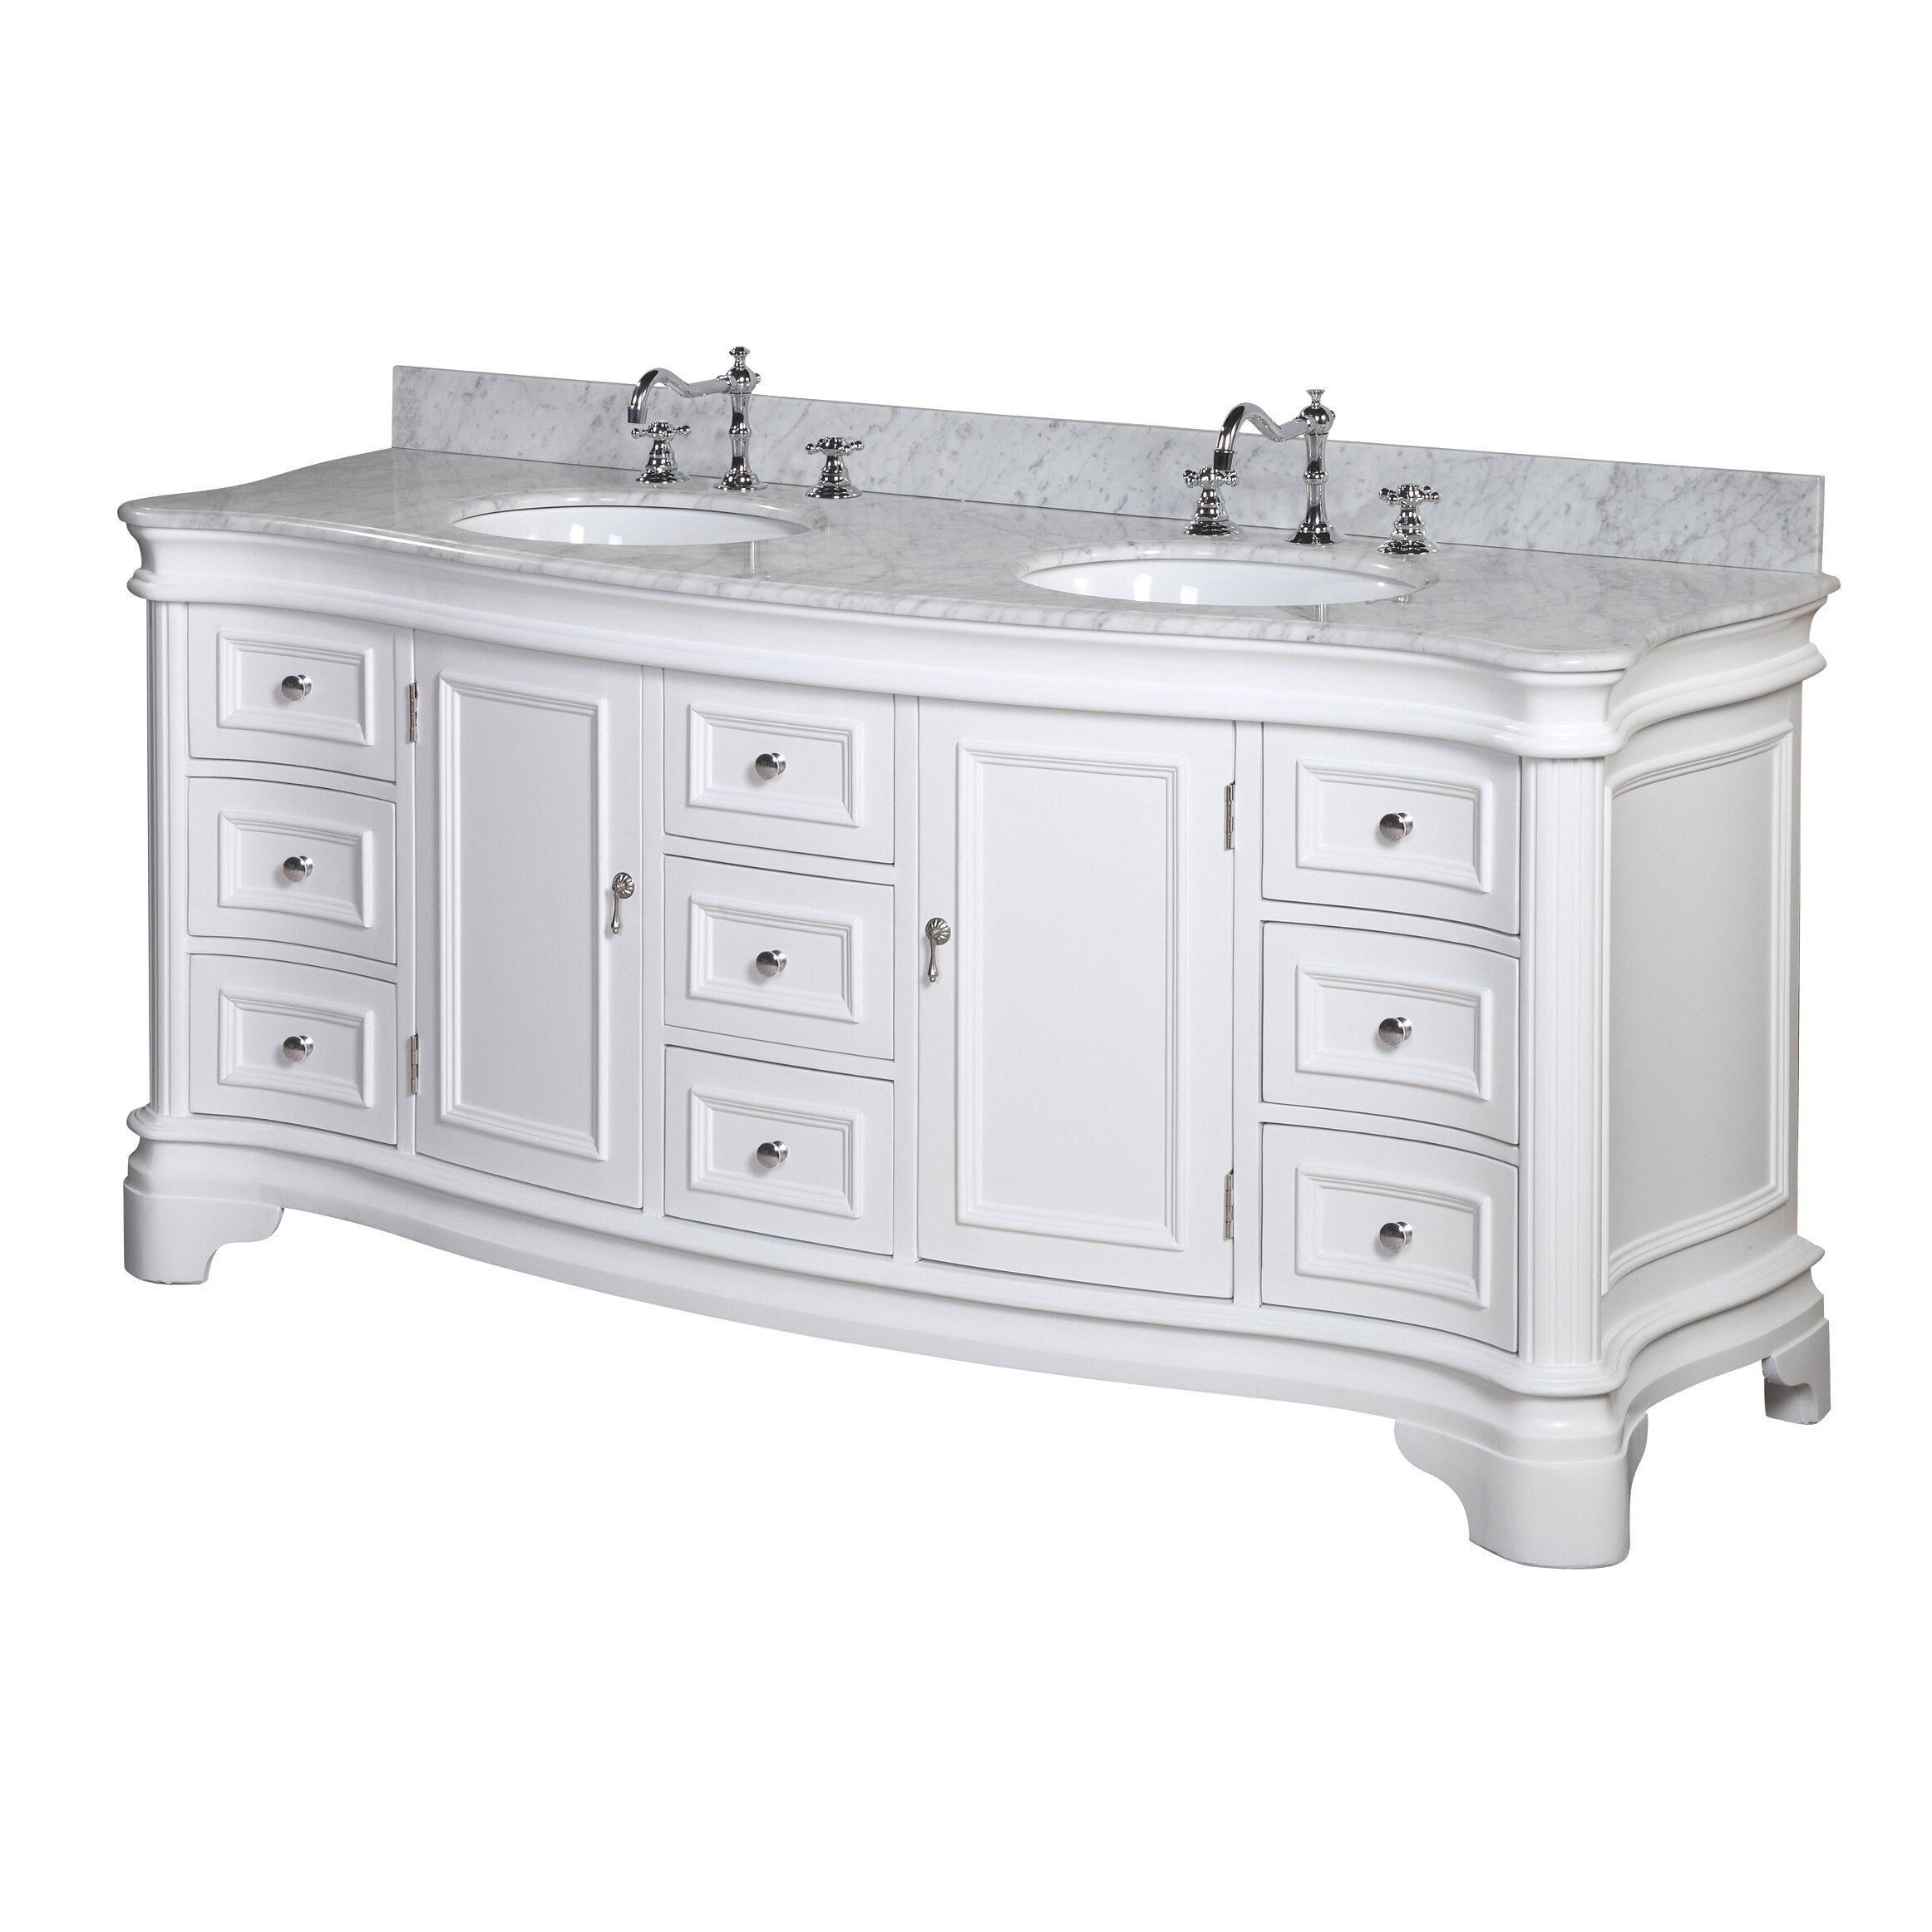 Kbc katherine 72 inch bathroom vanity set carrara white for Bathroom 72 inch vanity